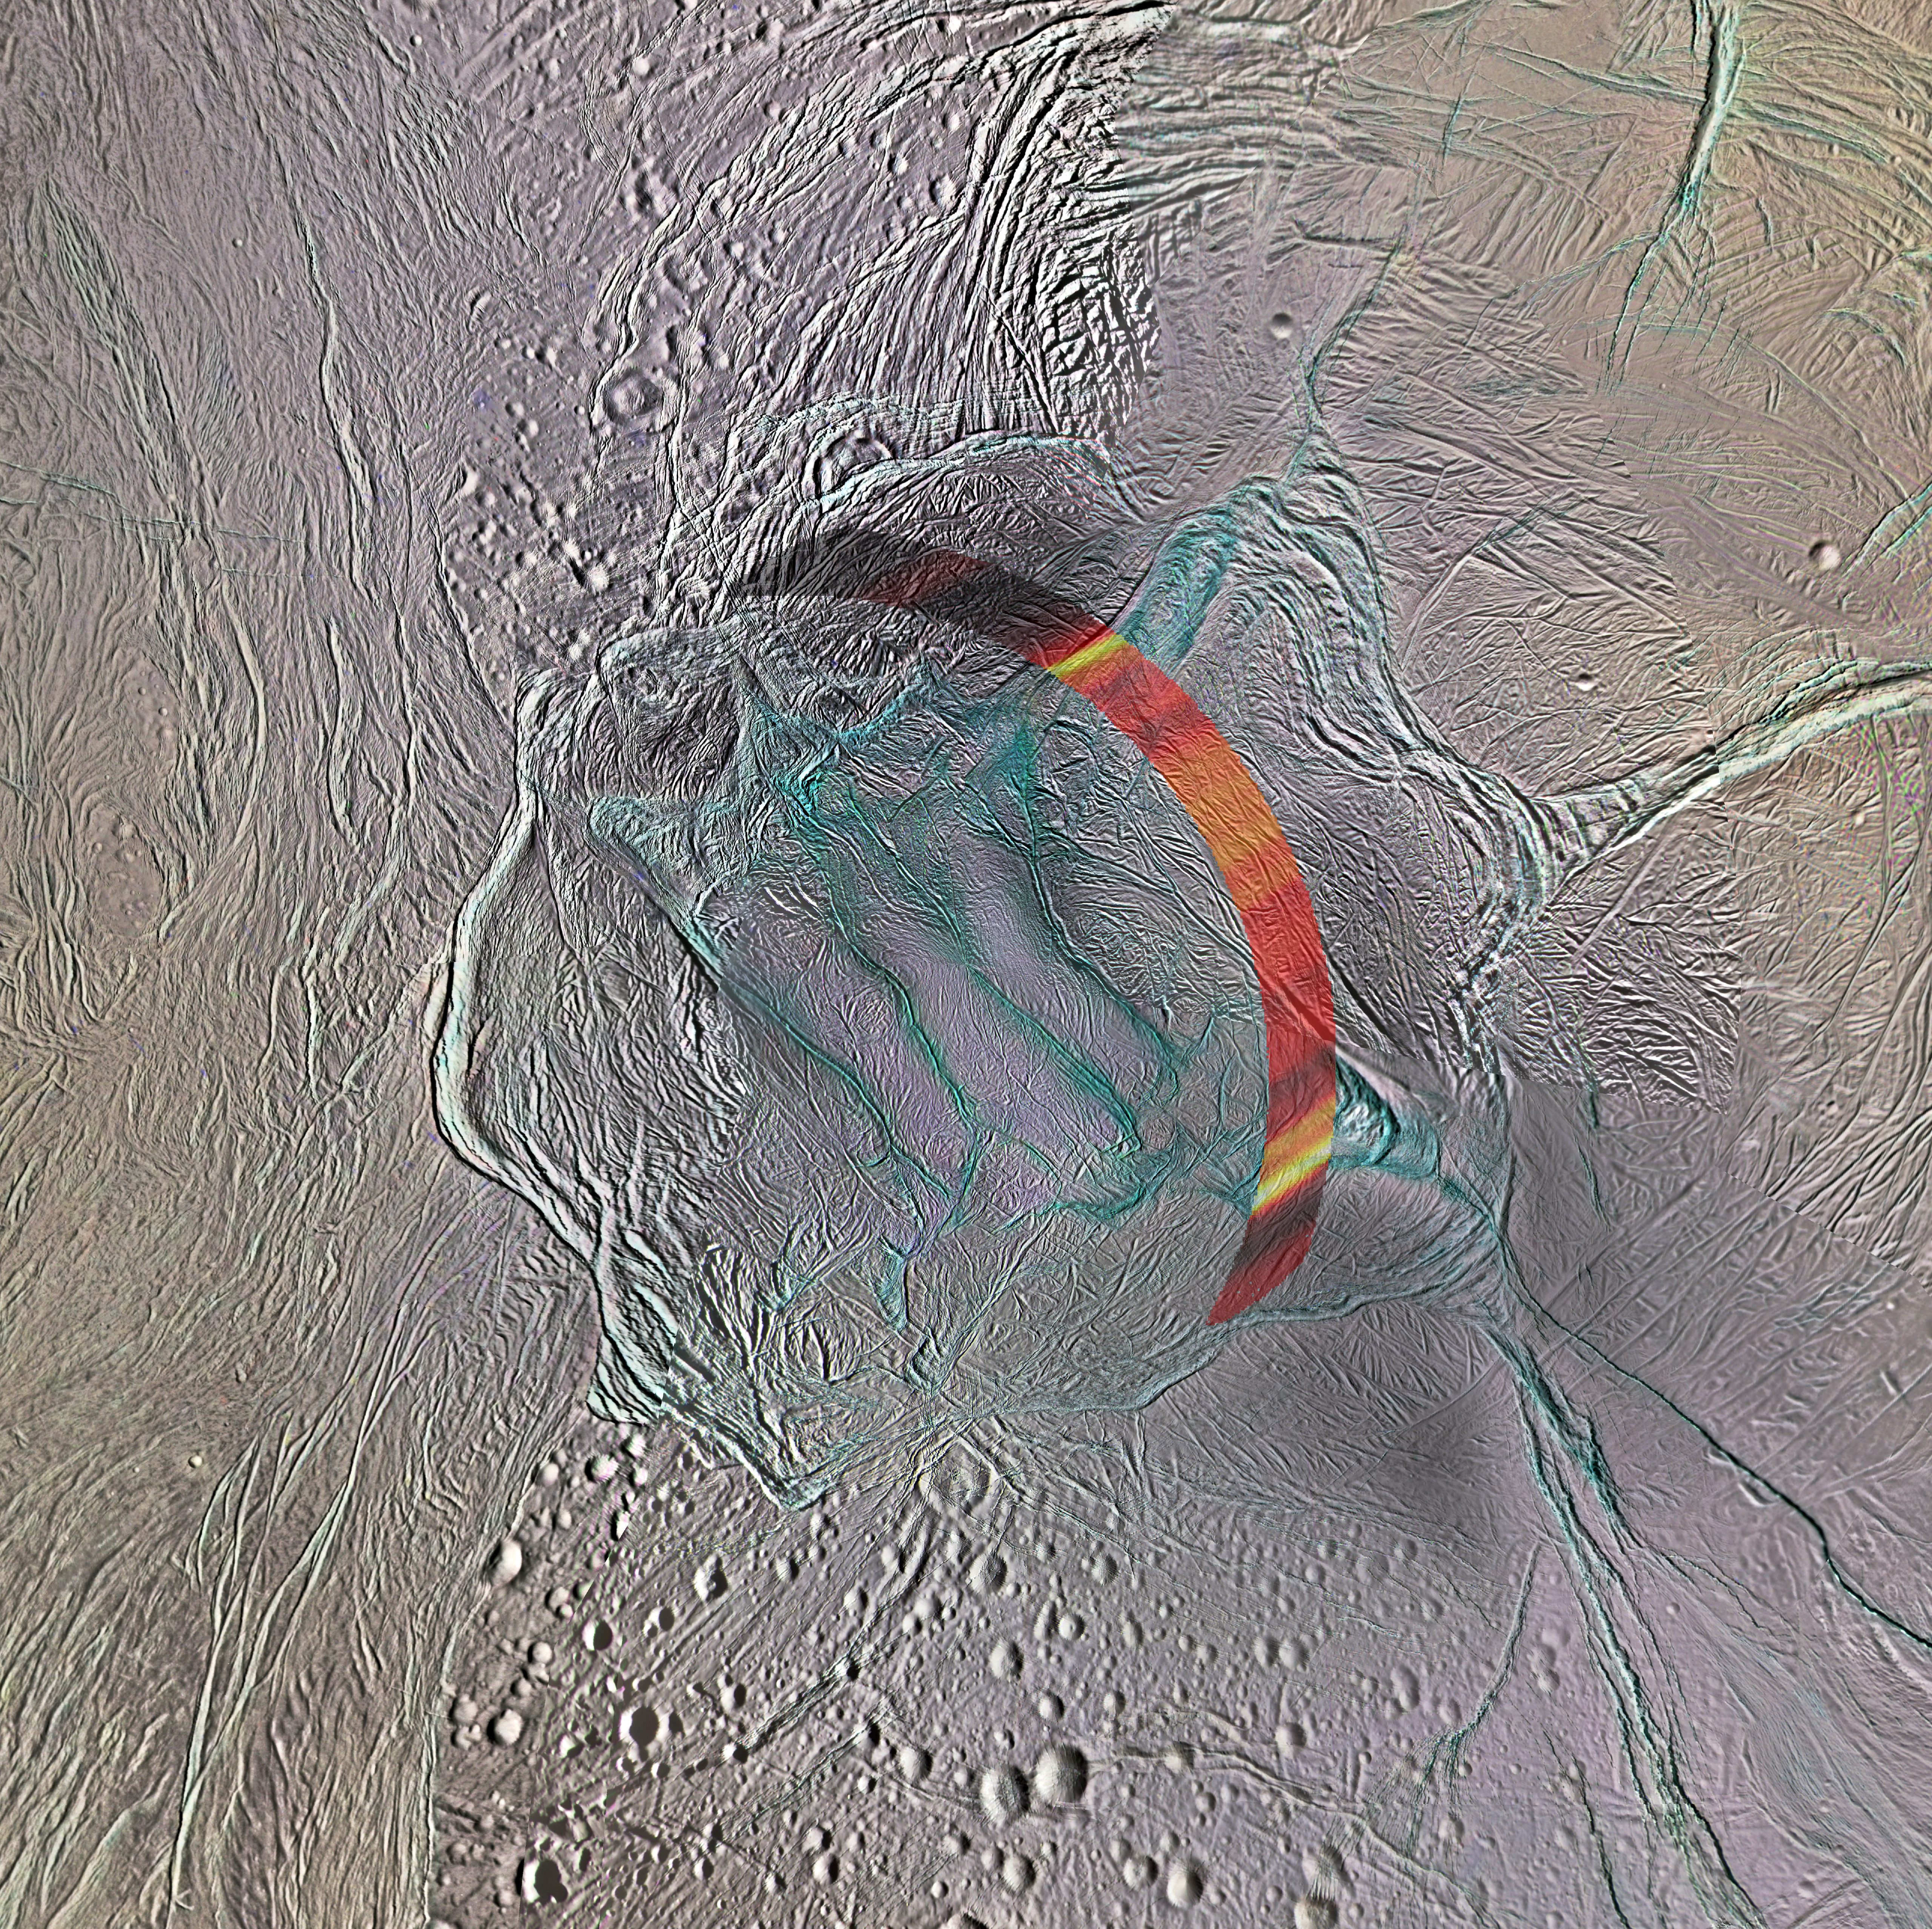 Color image with data overlay showing heat sources on Enceladus.